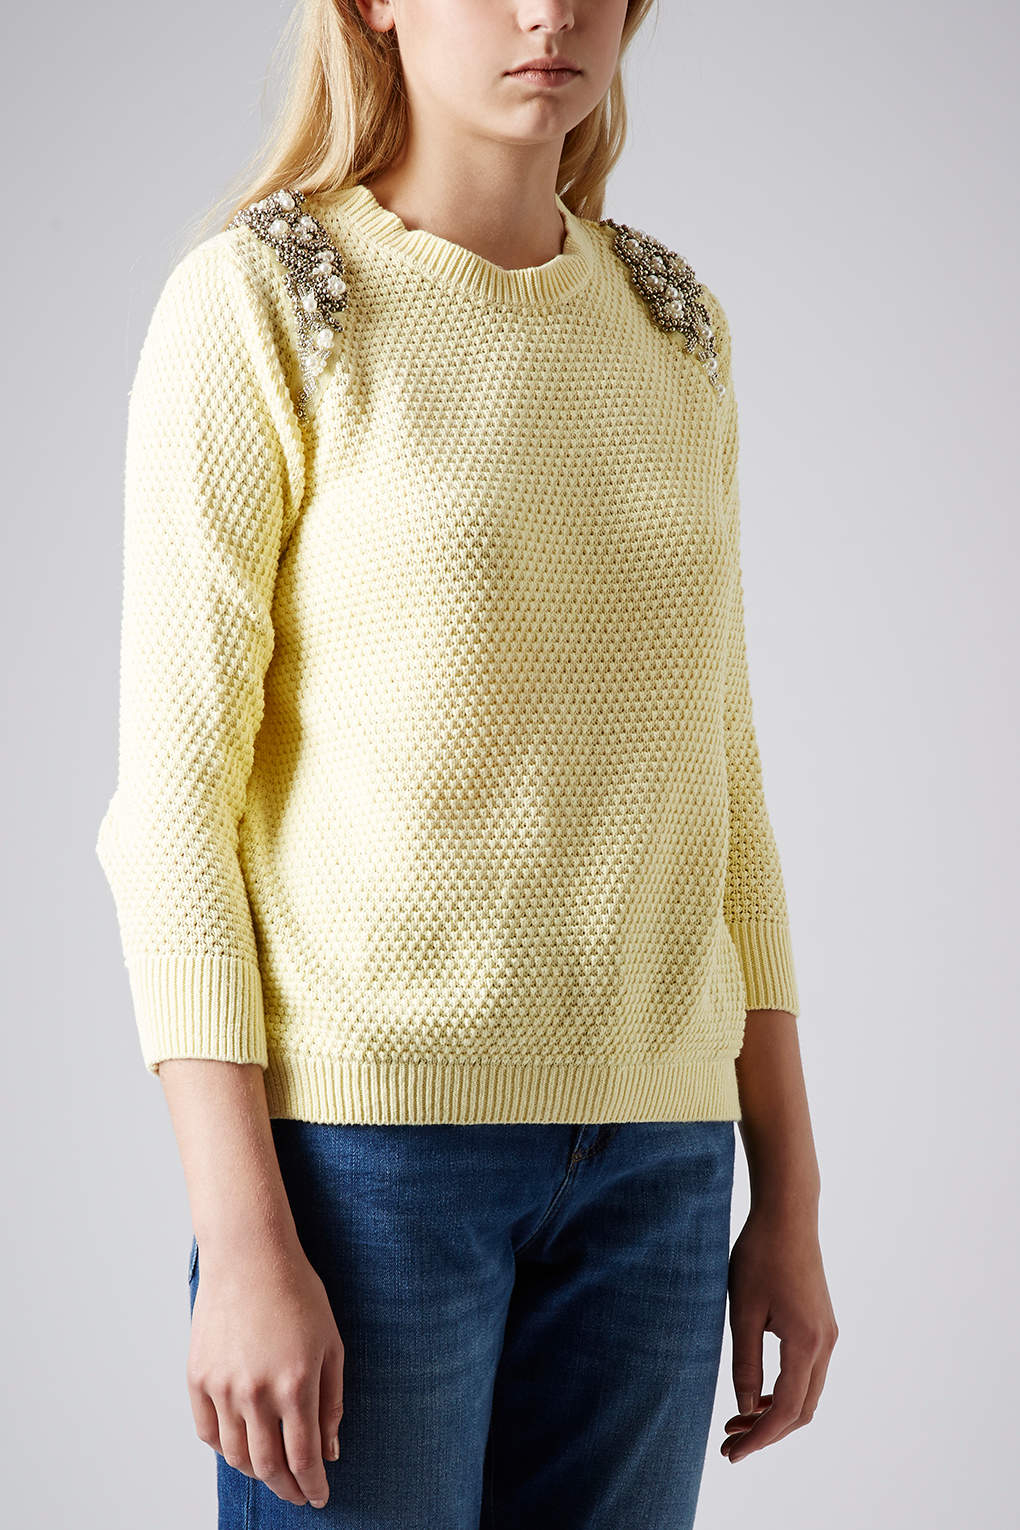 lyst topshop knitted pearl embellished jumper in yellow